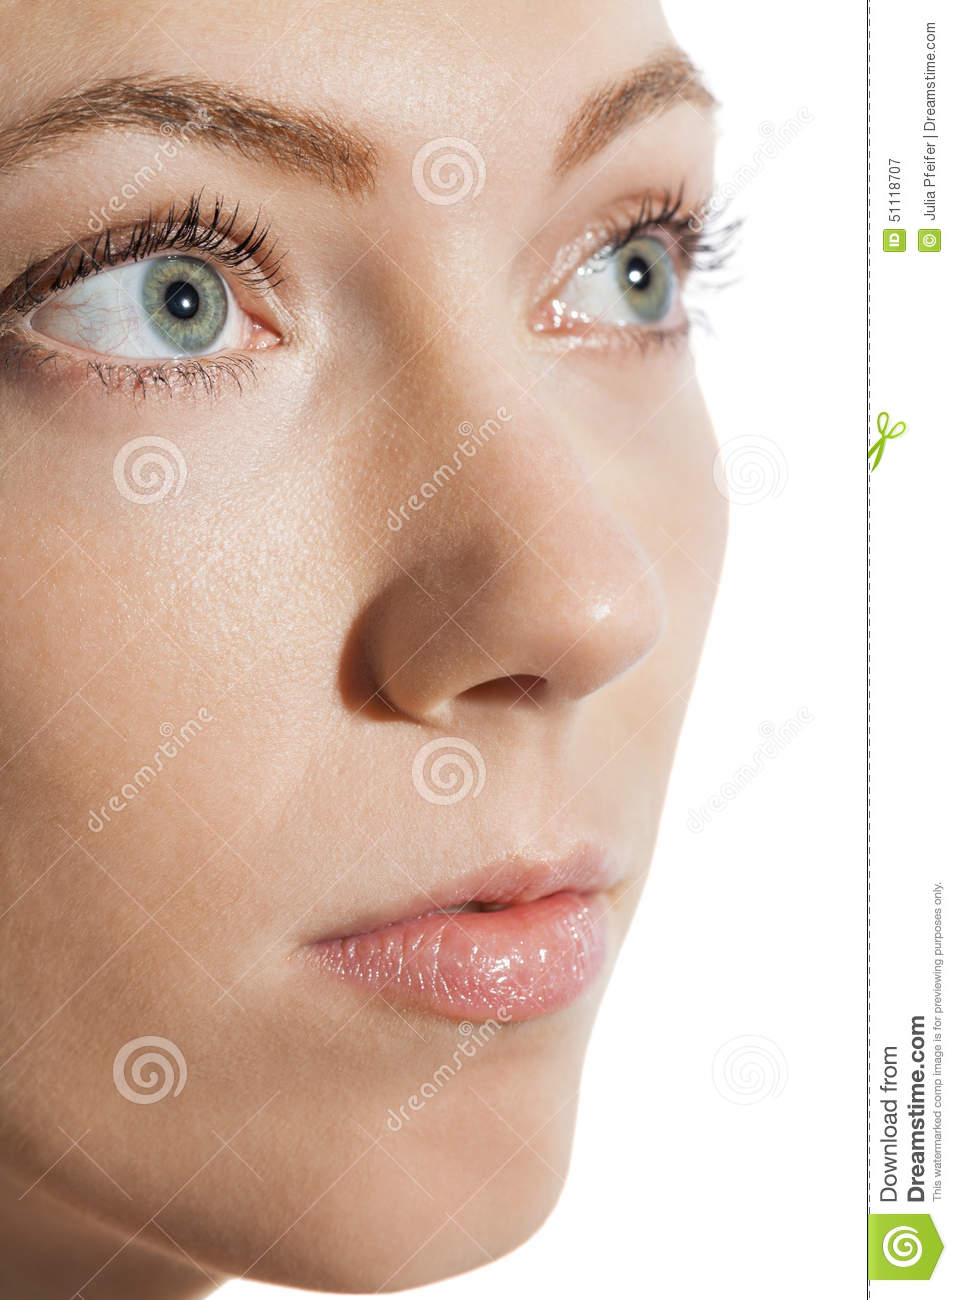 Close Up Woman Eye Looking Up Stock Image - Image of ...